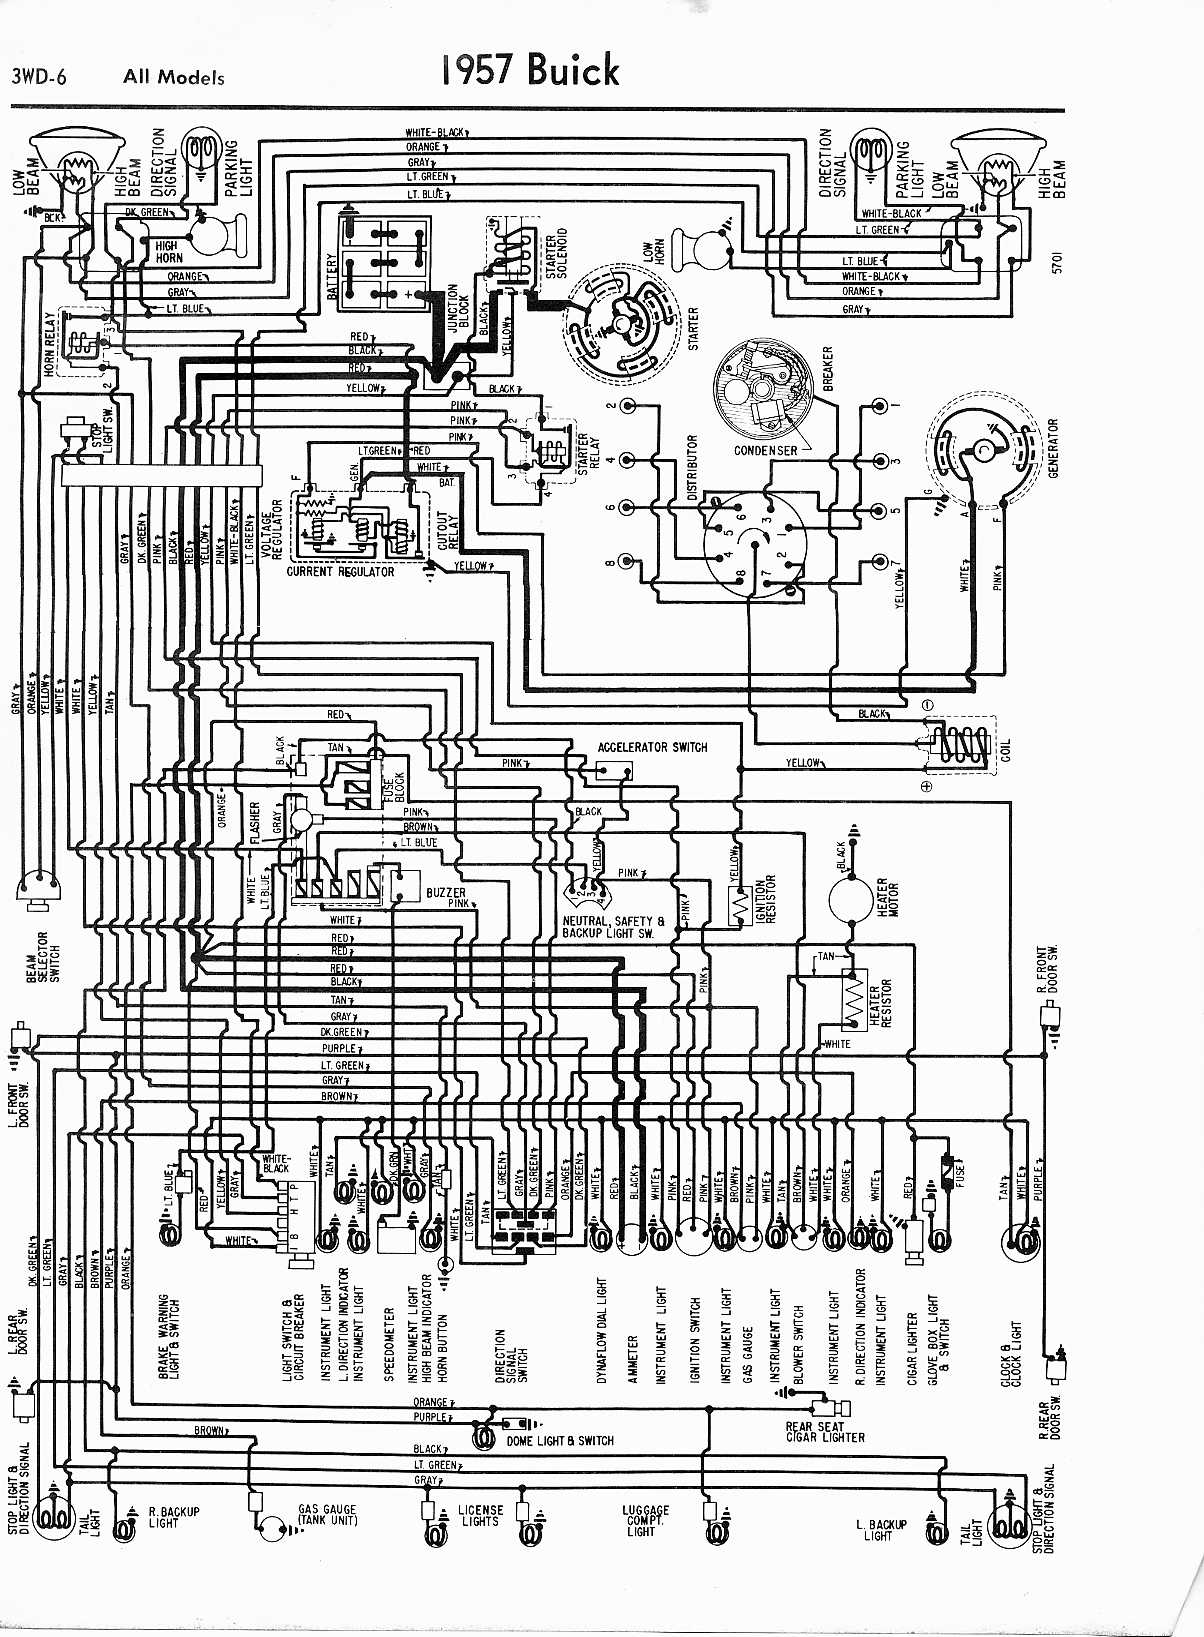 buick riviera wiring diagram all wiring diagram buick wiring diagrams 1957 1965 buick fuse box diagram buick riviera wiring diagram